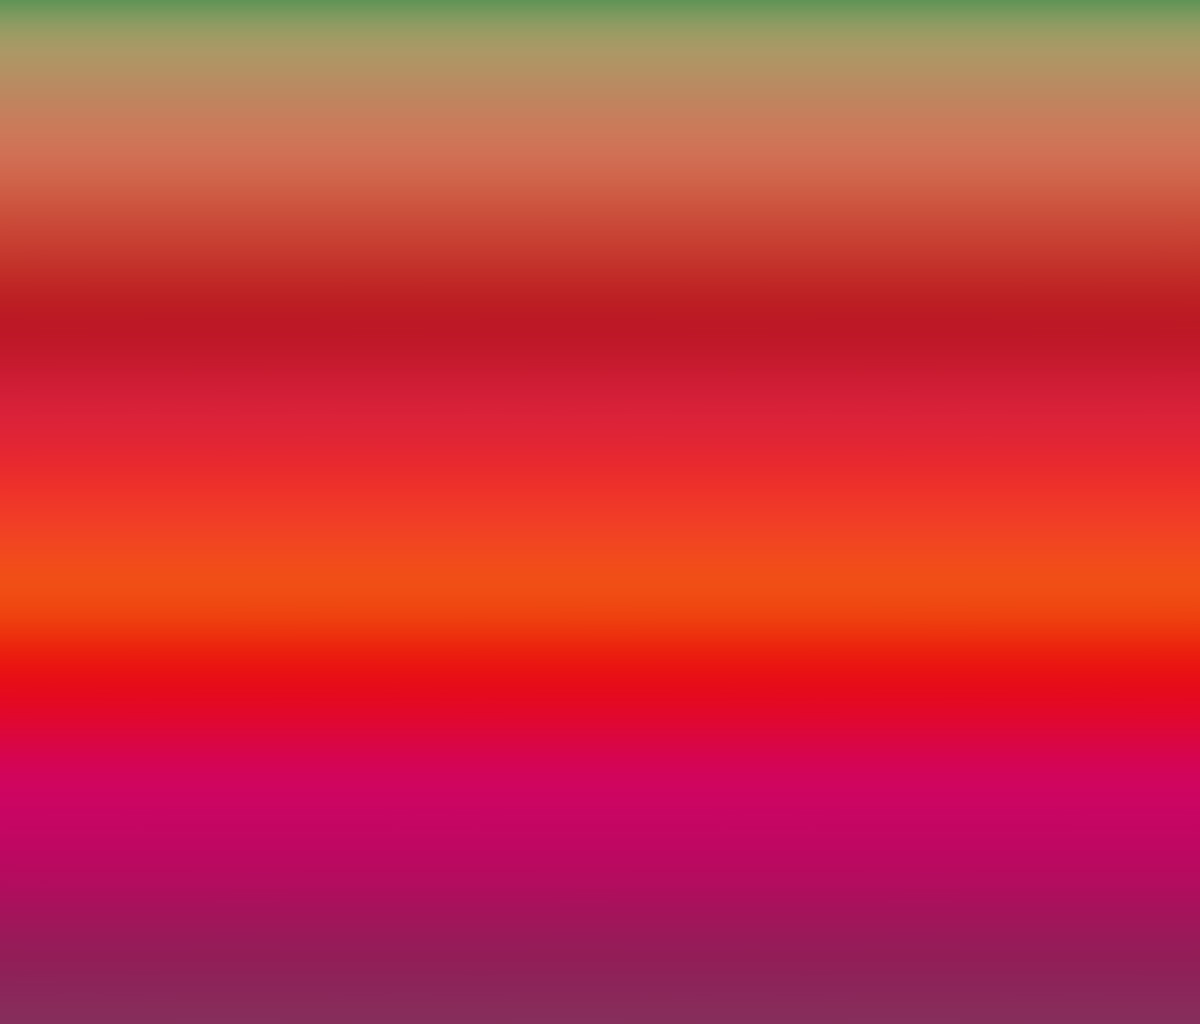 abstract caleido rainbow red - photo #25